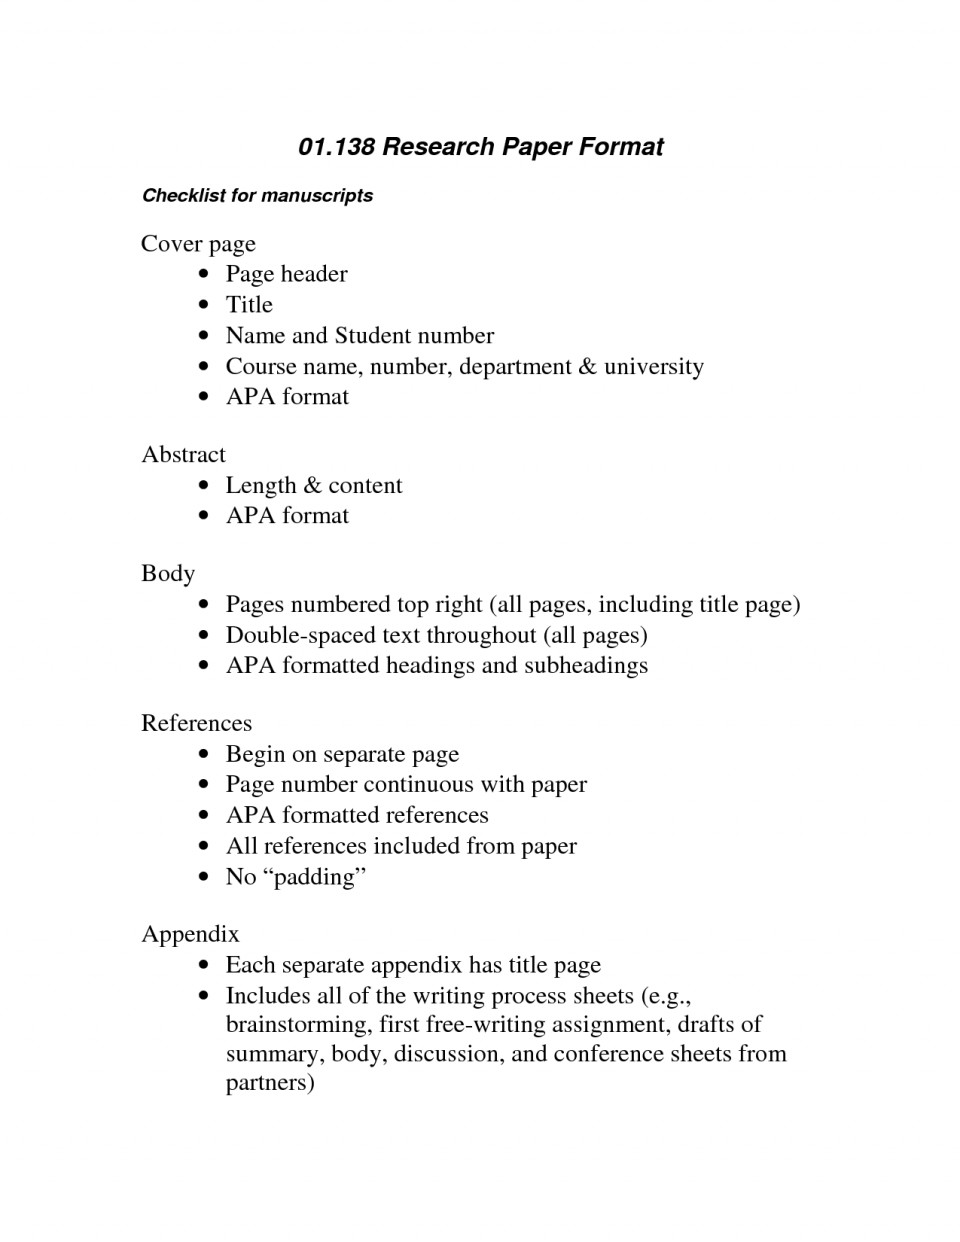 004 Outlines For Researchs Apa Awful Research Papers Sample Outline Paper Style Example 960